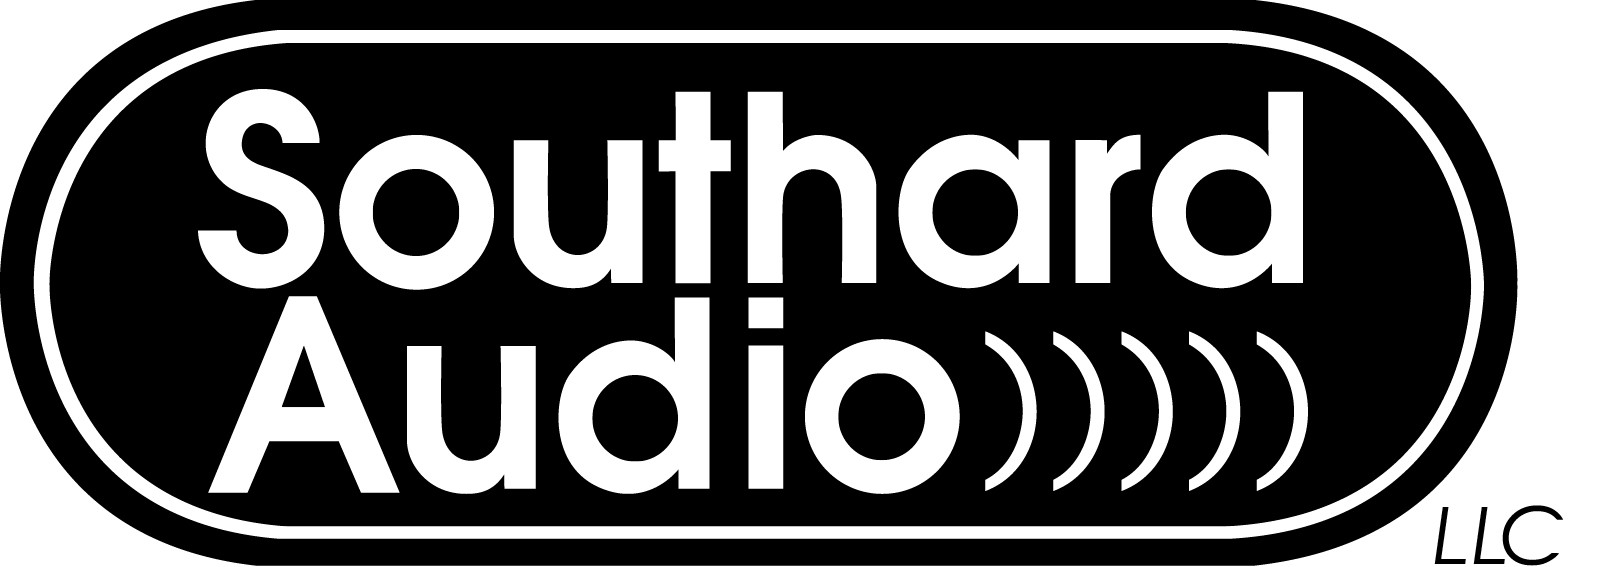 Southard Audio, LLC